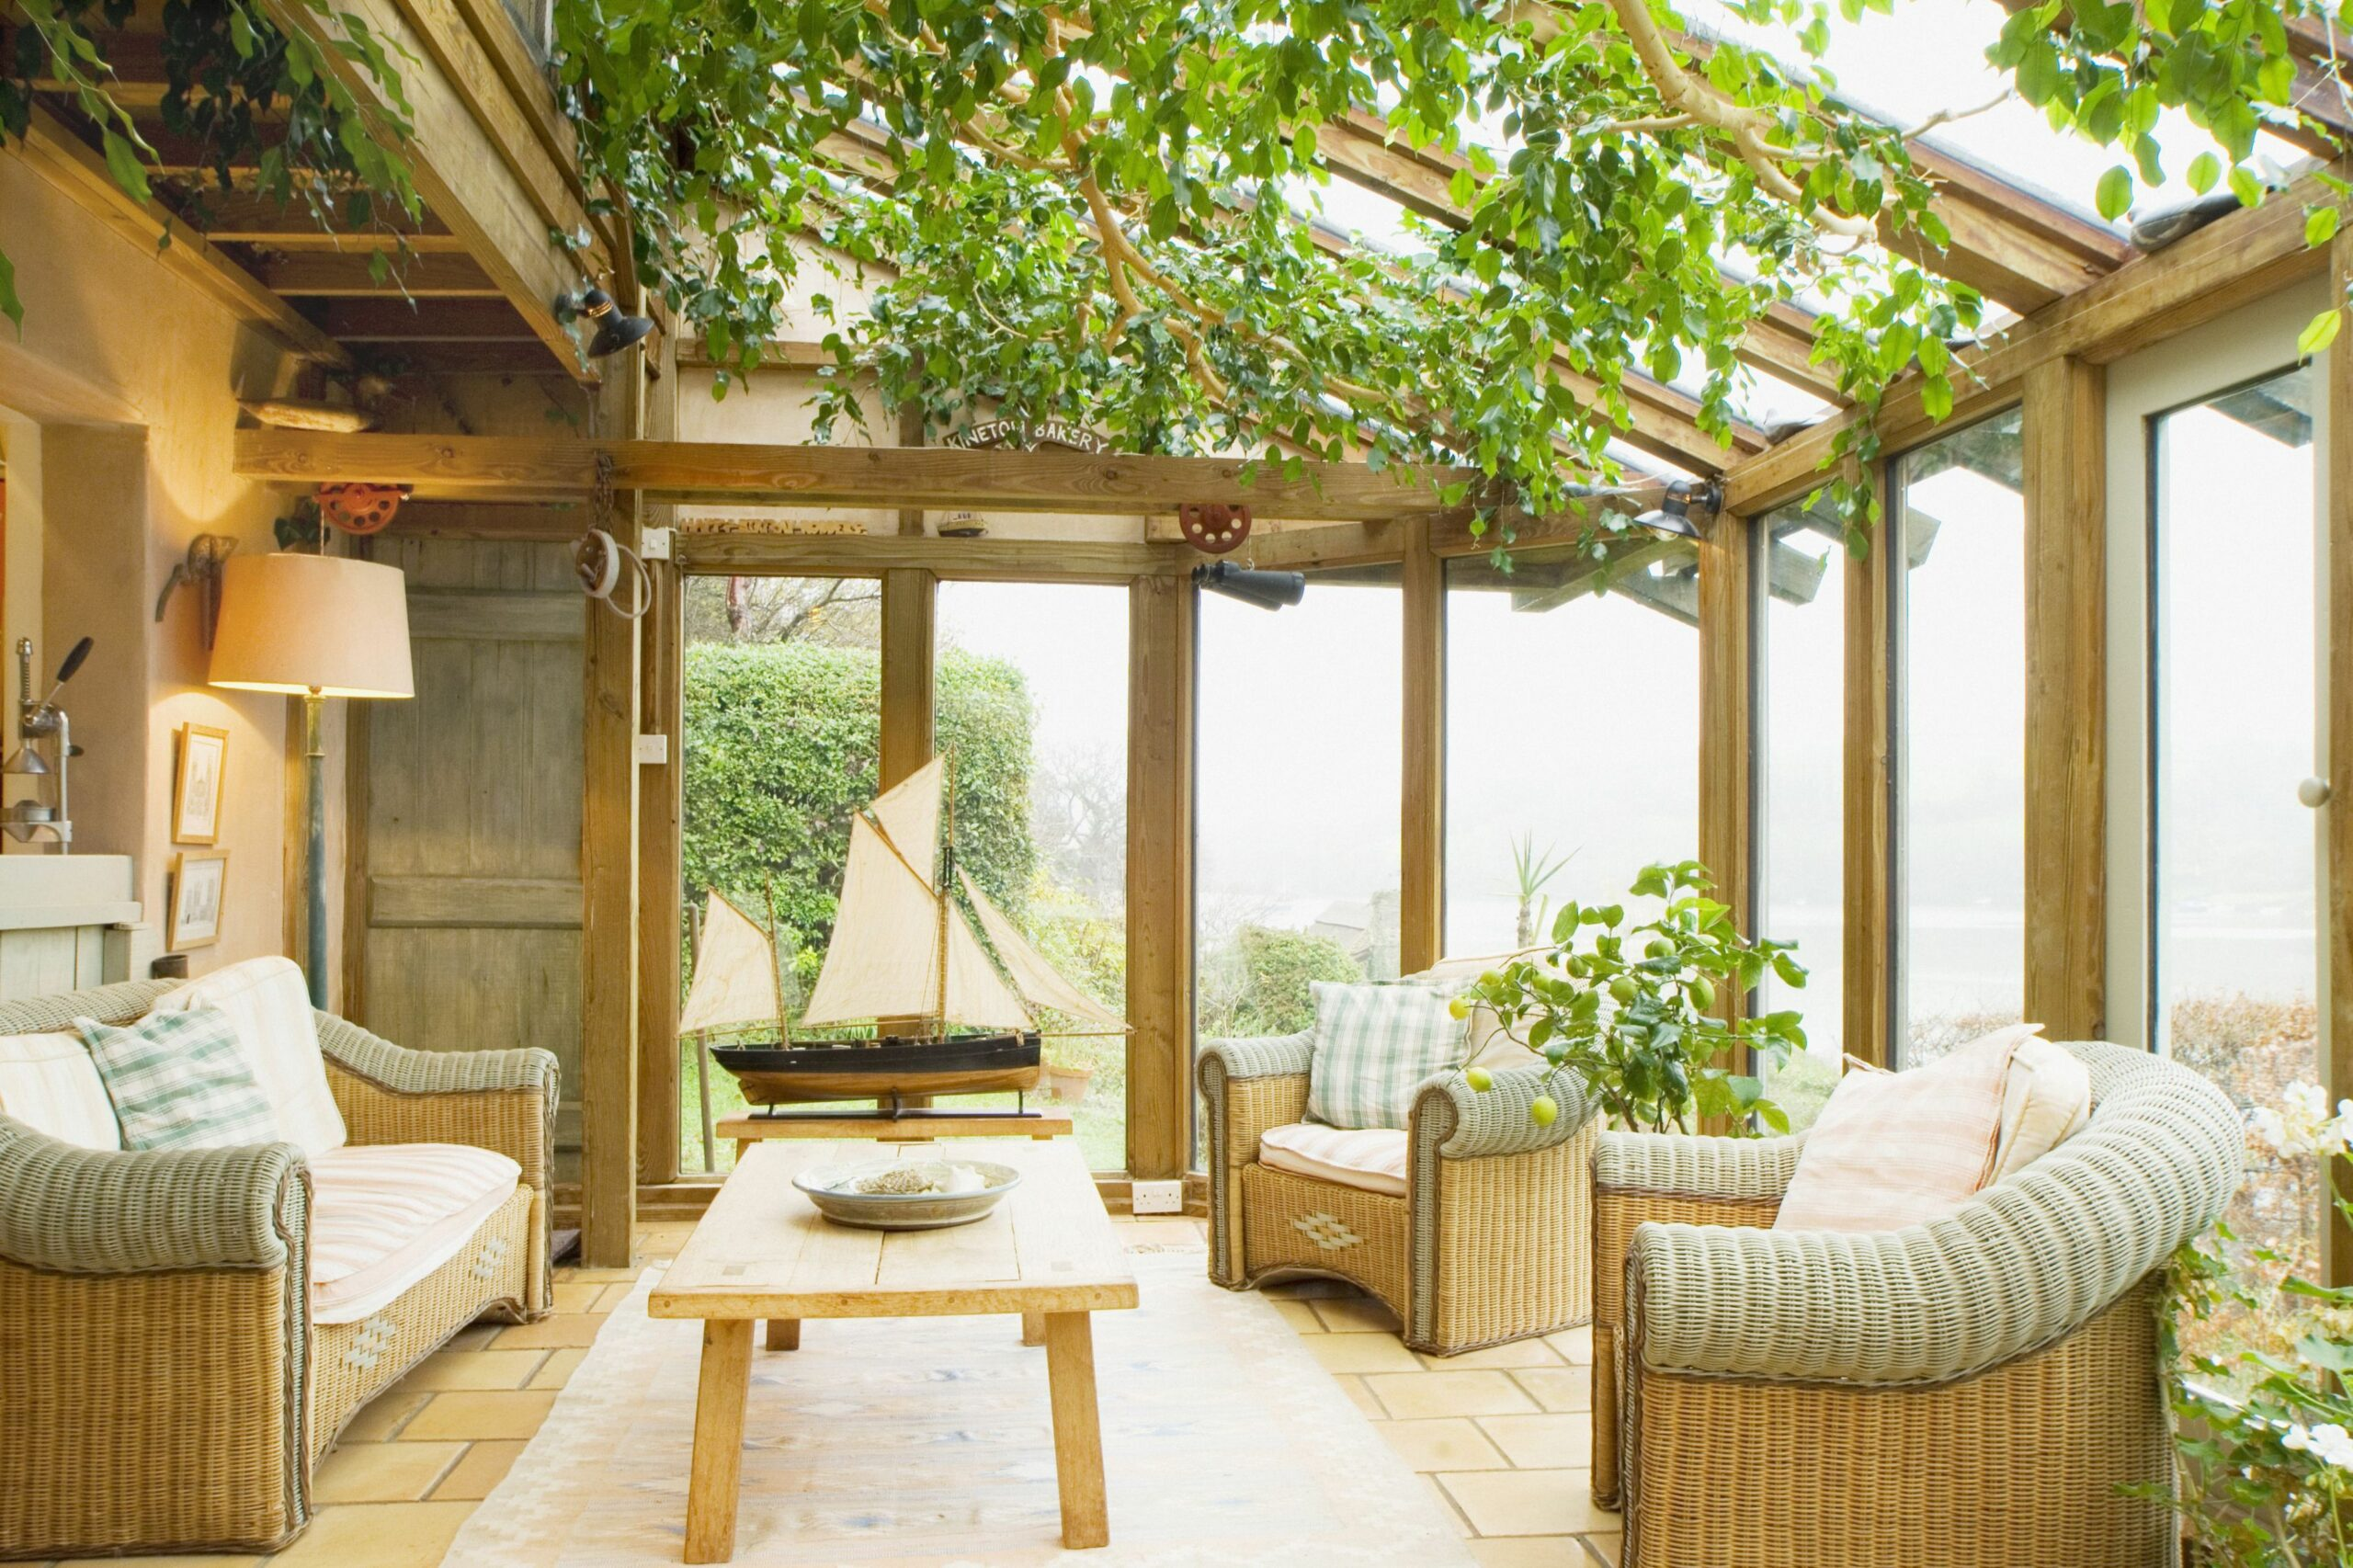 Outdoor Sunroom Ideas: What to Know Before You Build - sunroom insulation ideas